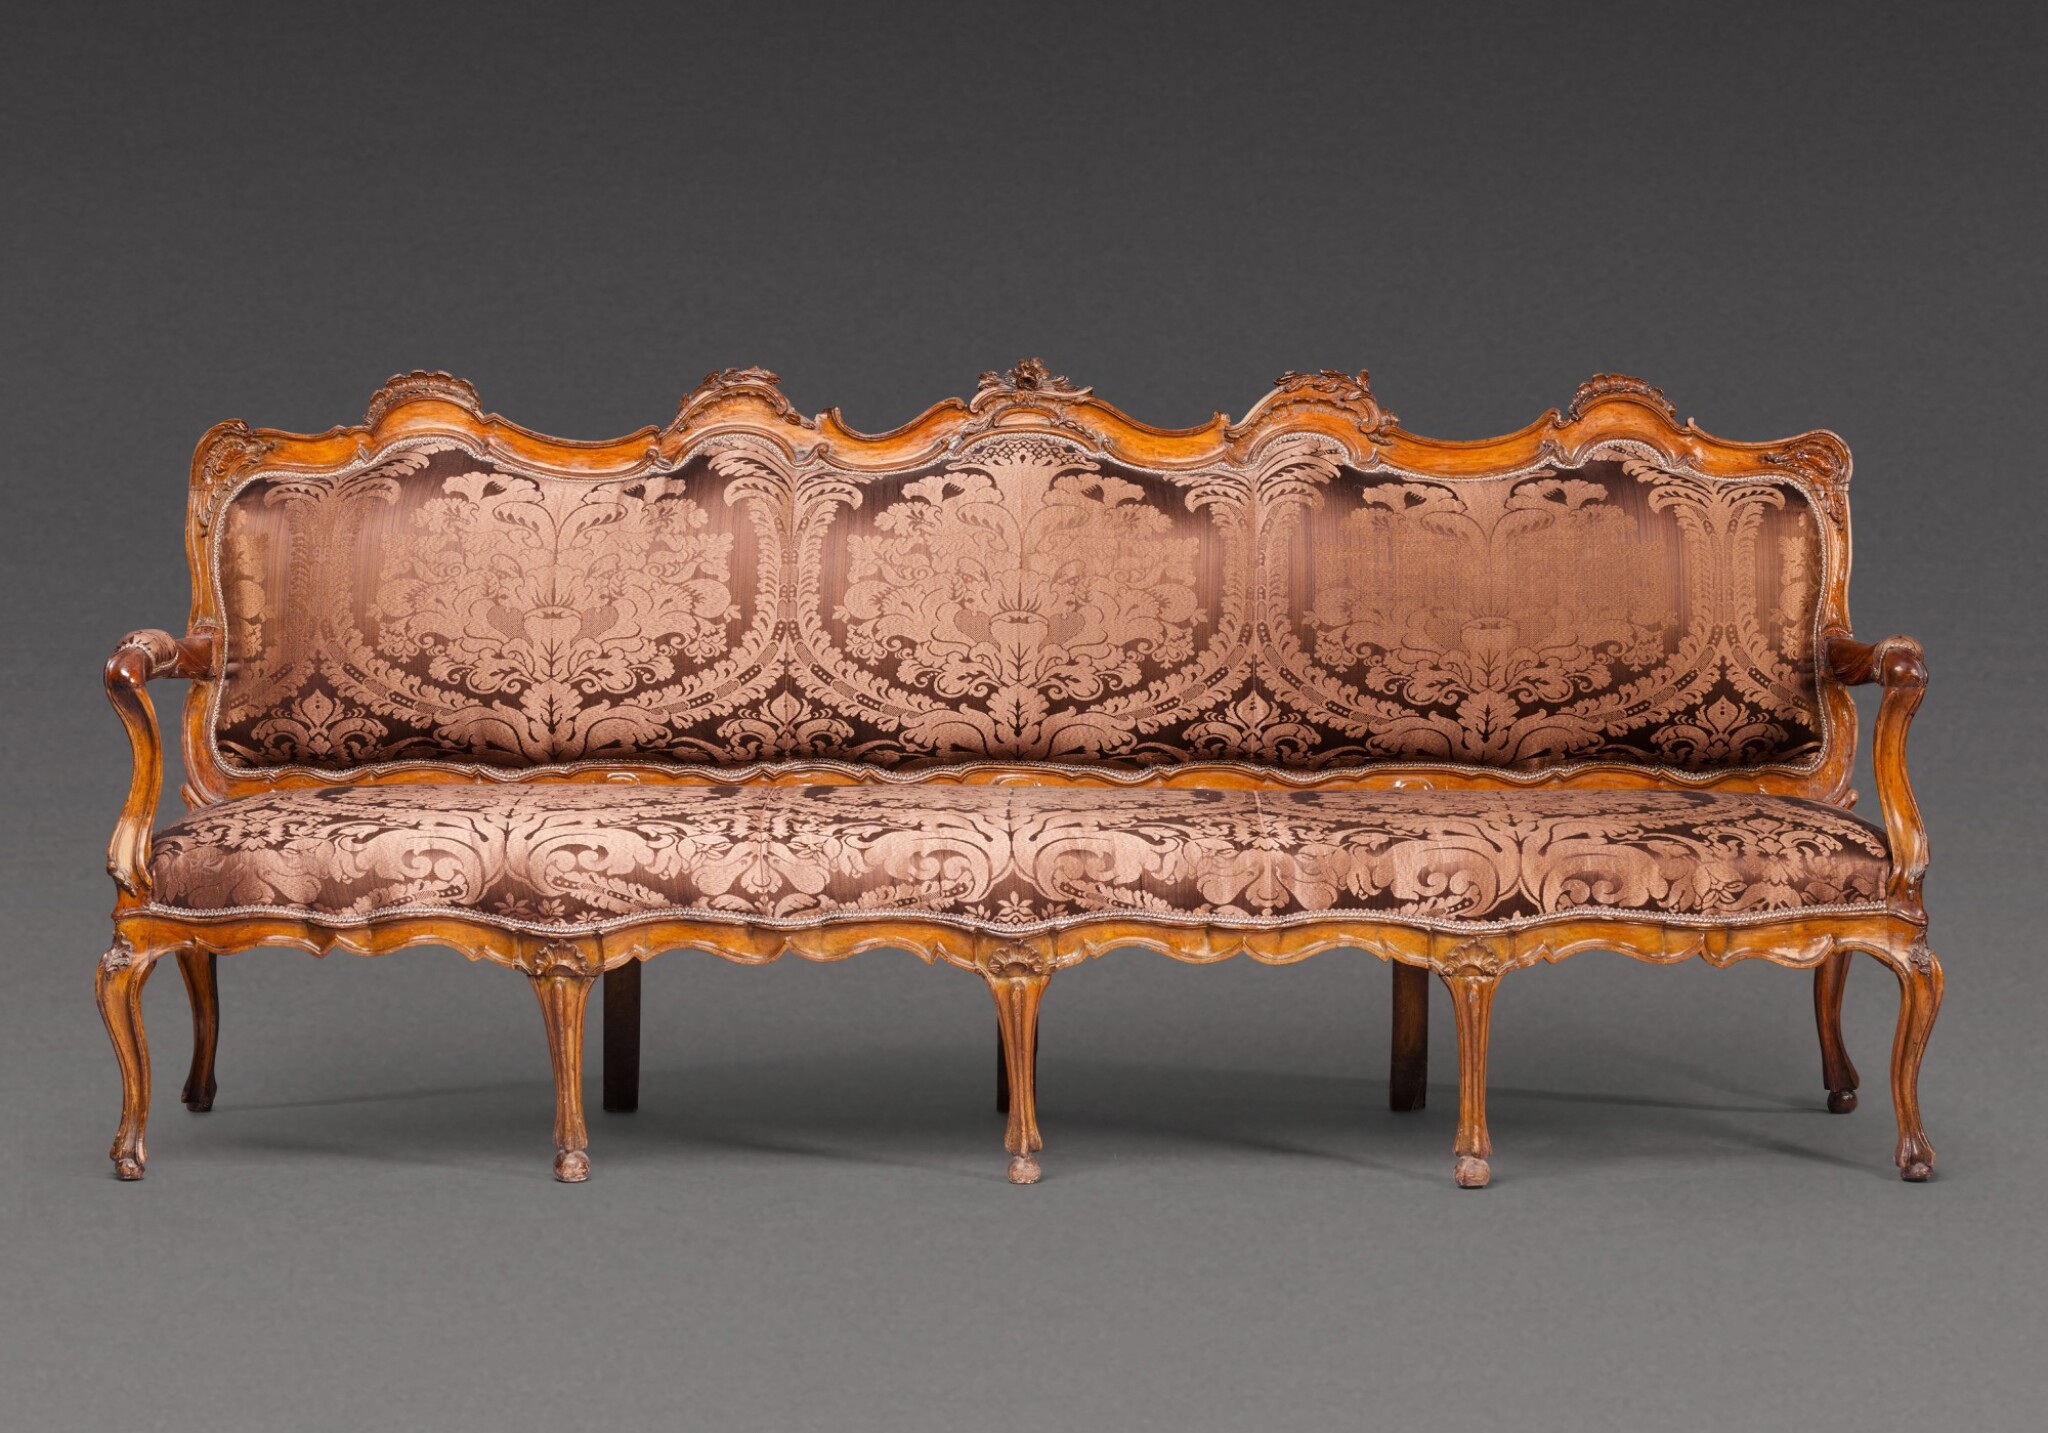 View 1 of Lot 177. A North Italian carved walnut sofa, probably Parma, mid-18th century.